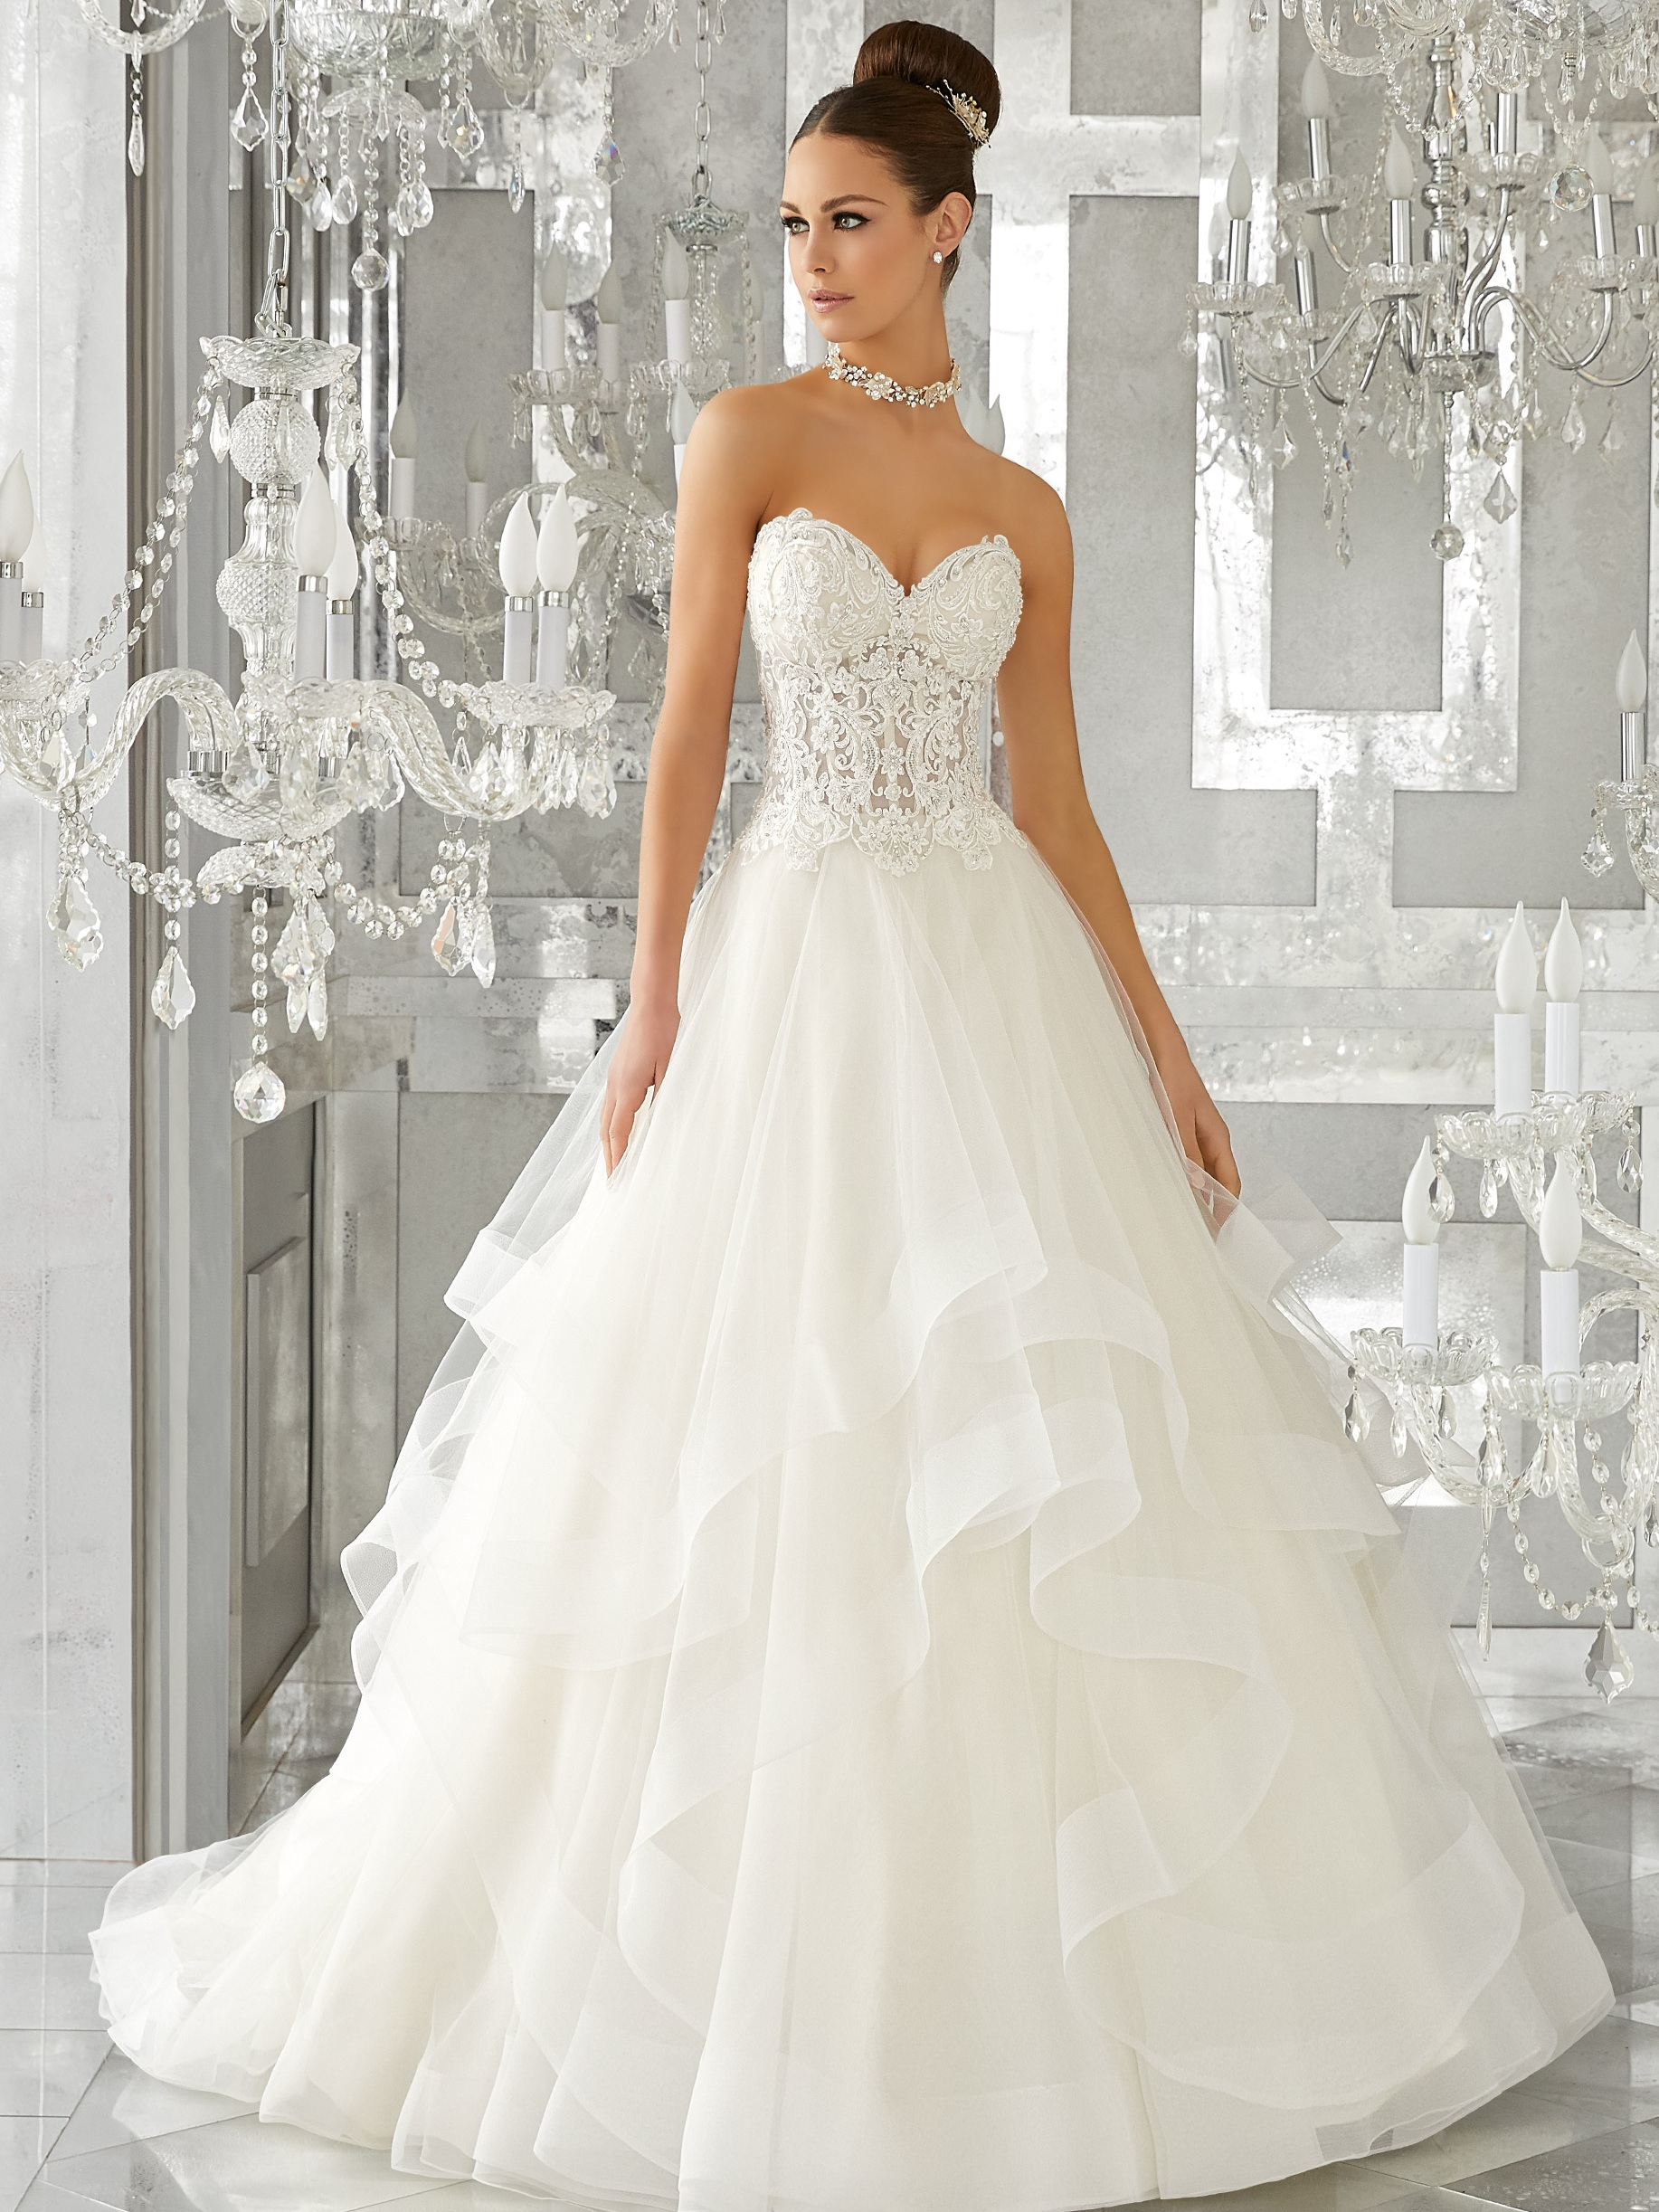 Mori Lee 5570 Ivory Light Gold // Retail Price $1249 | Our Price $$874